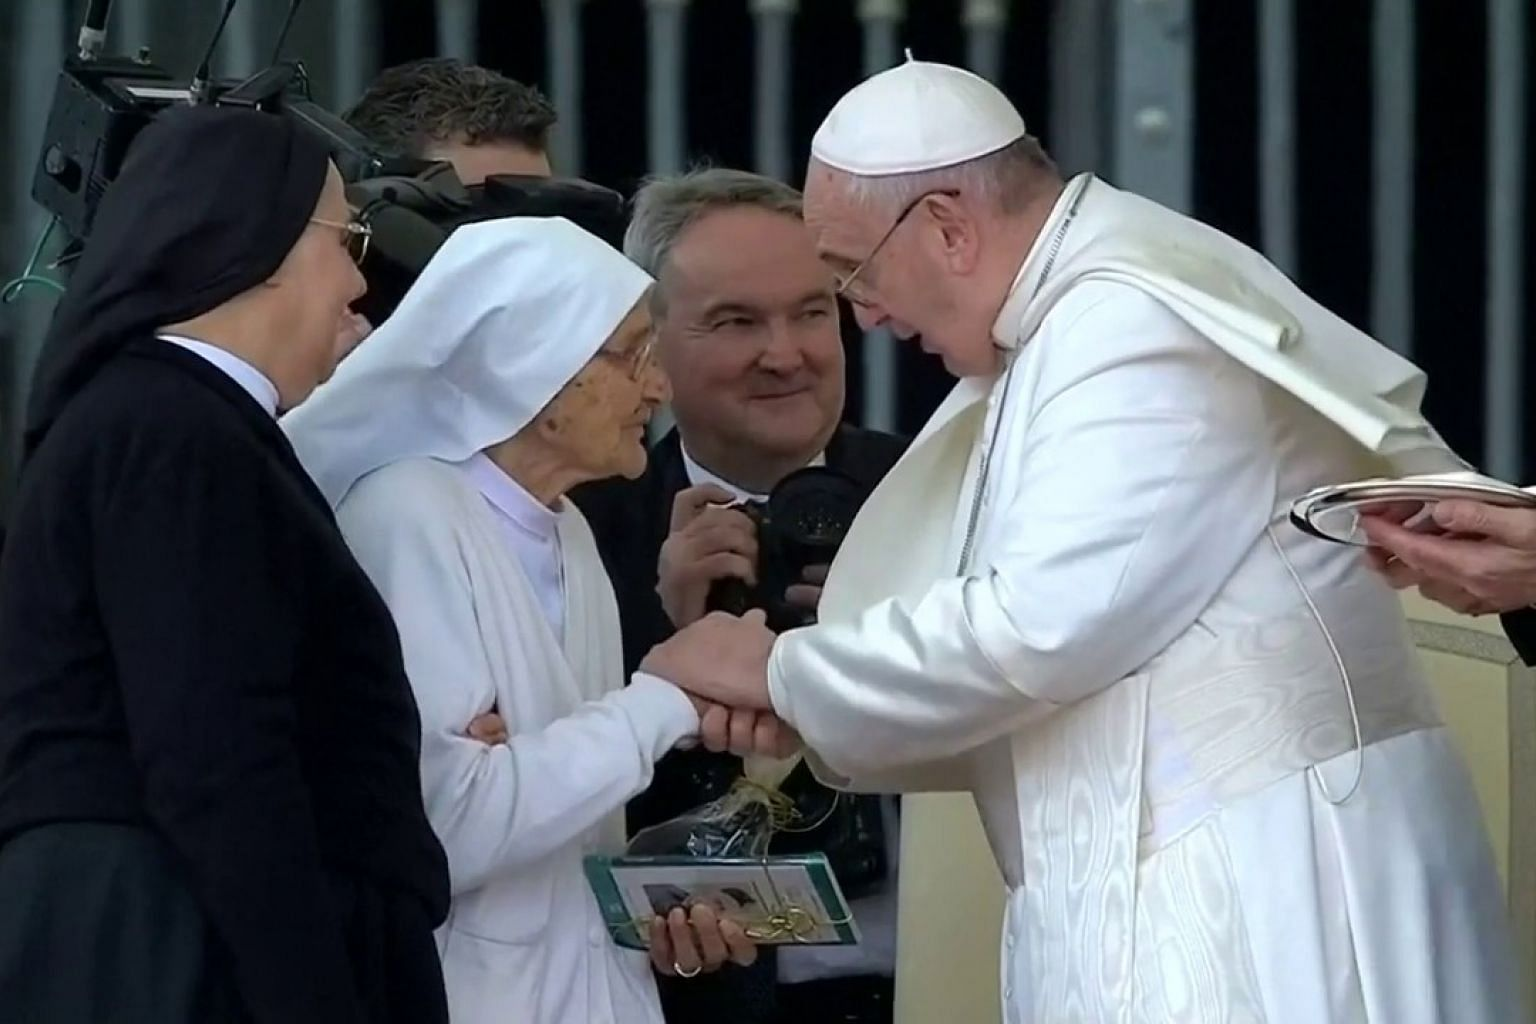 Germs to blame for Pope ring-kissing mystery